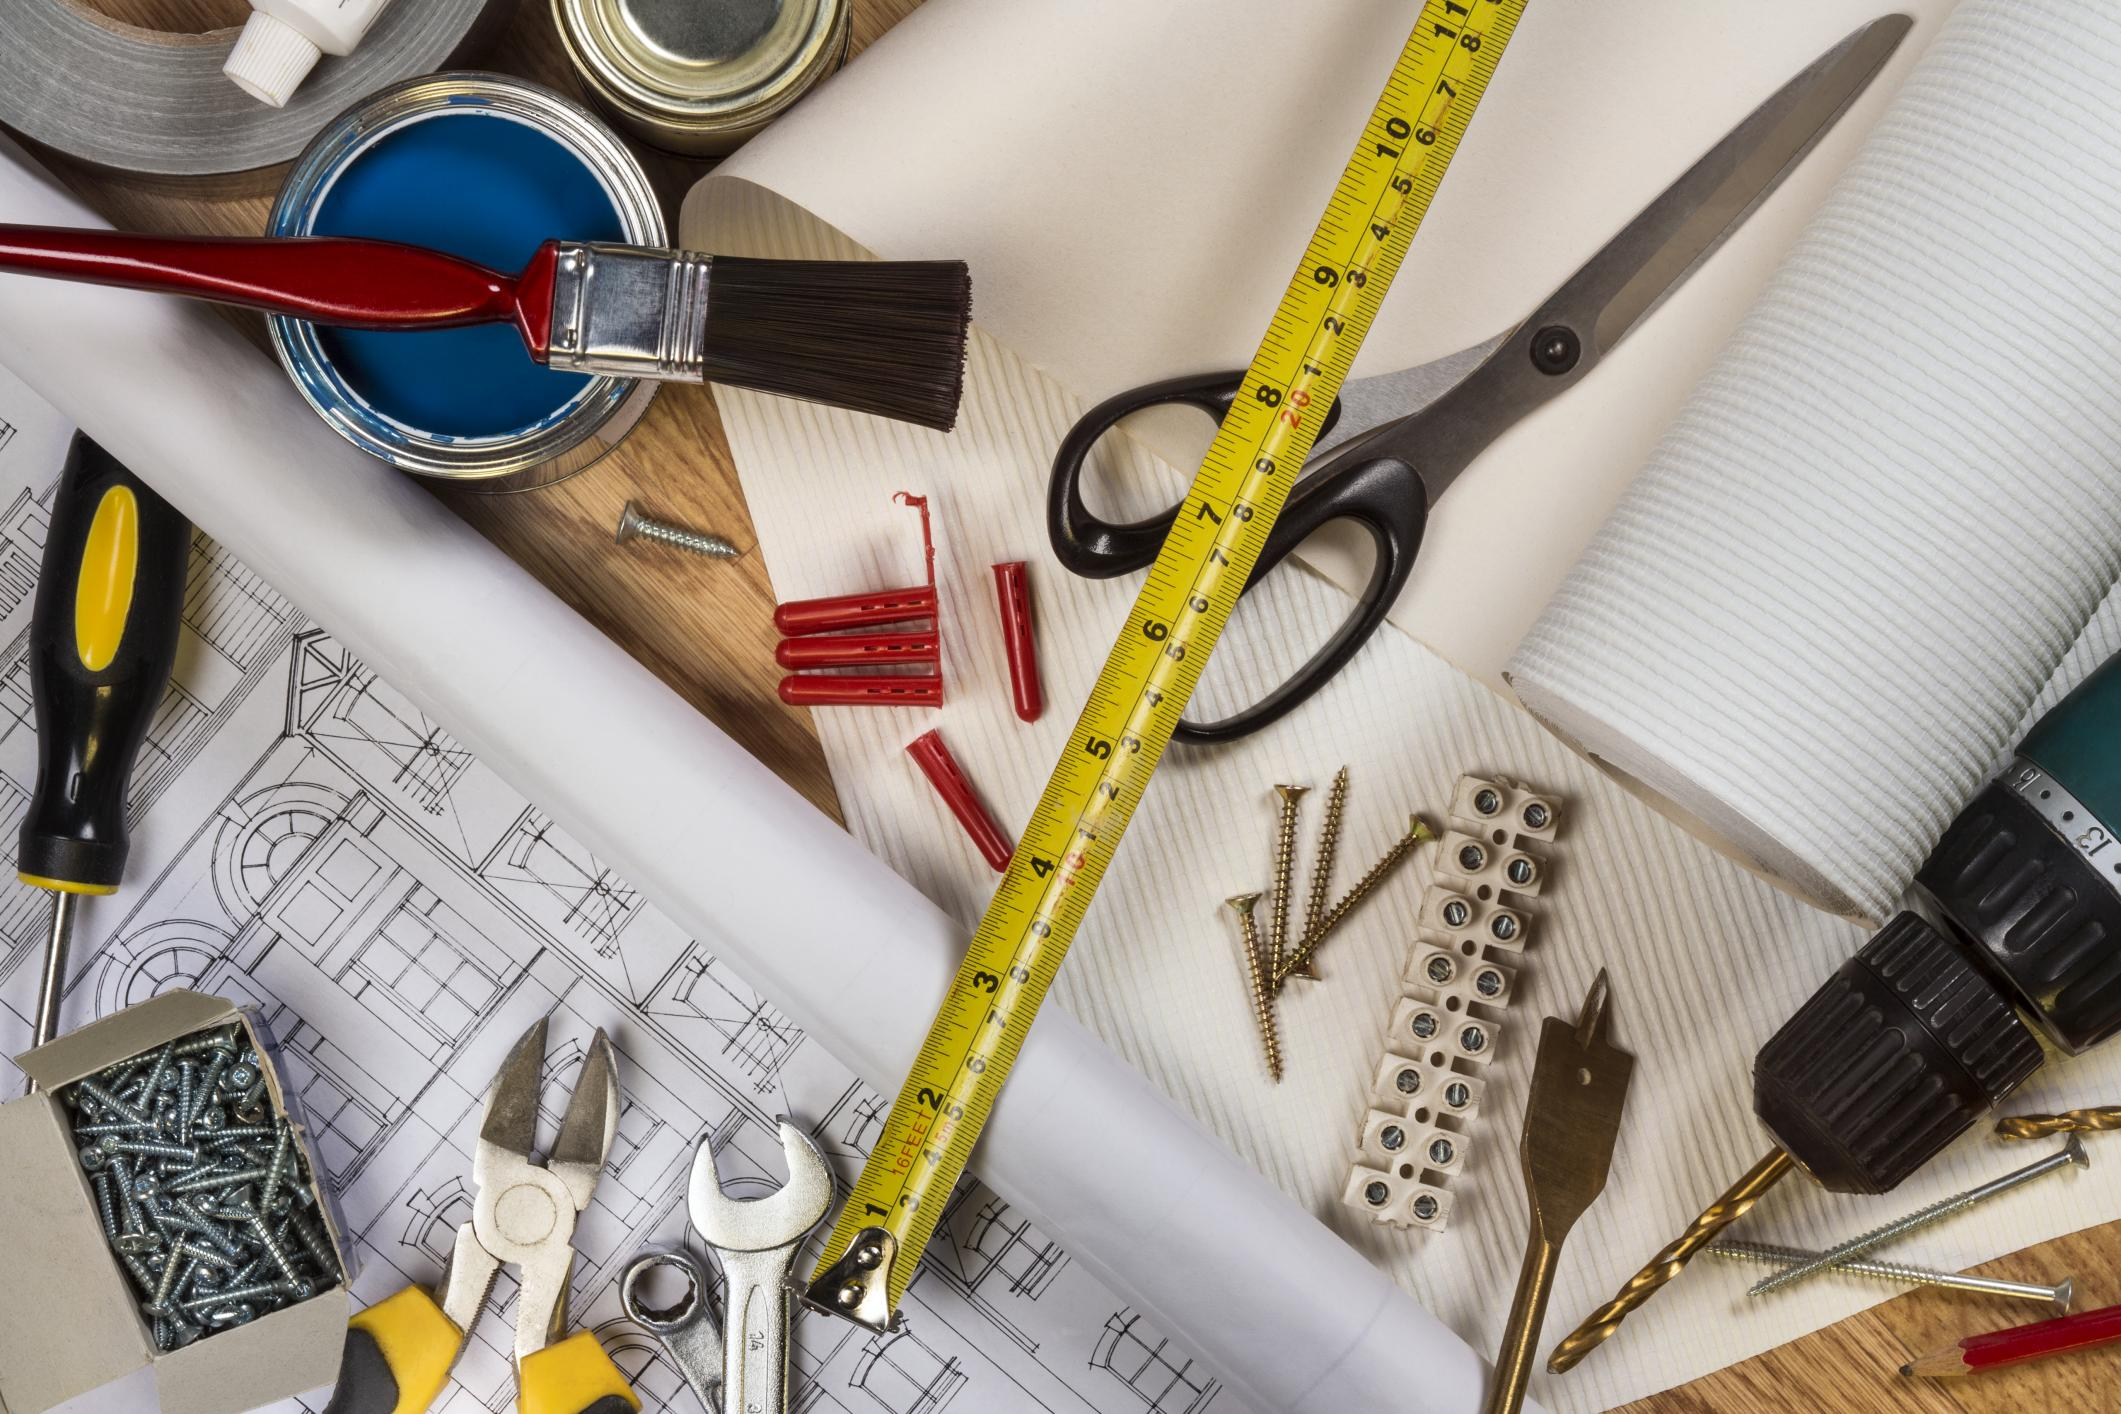 Home Maintenance Costs - How to Budget for the Unexpected